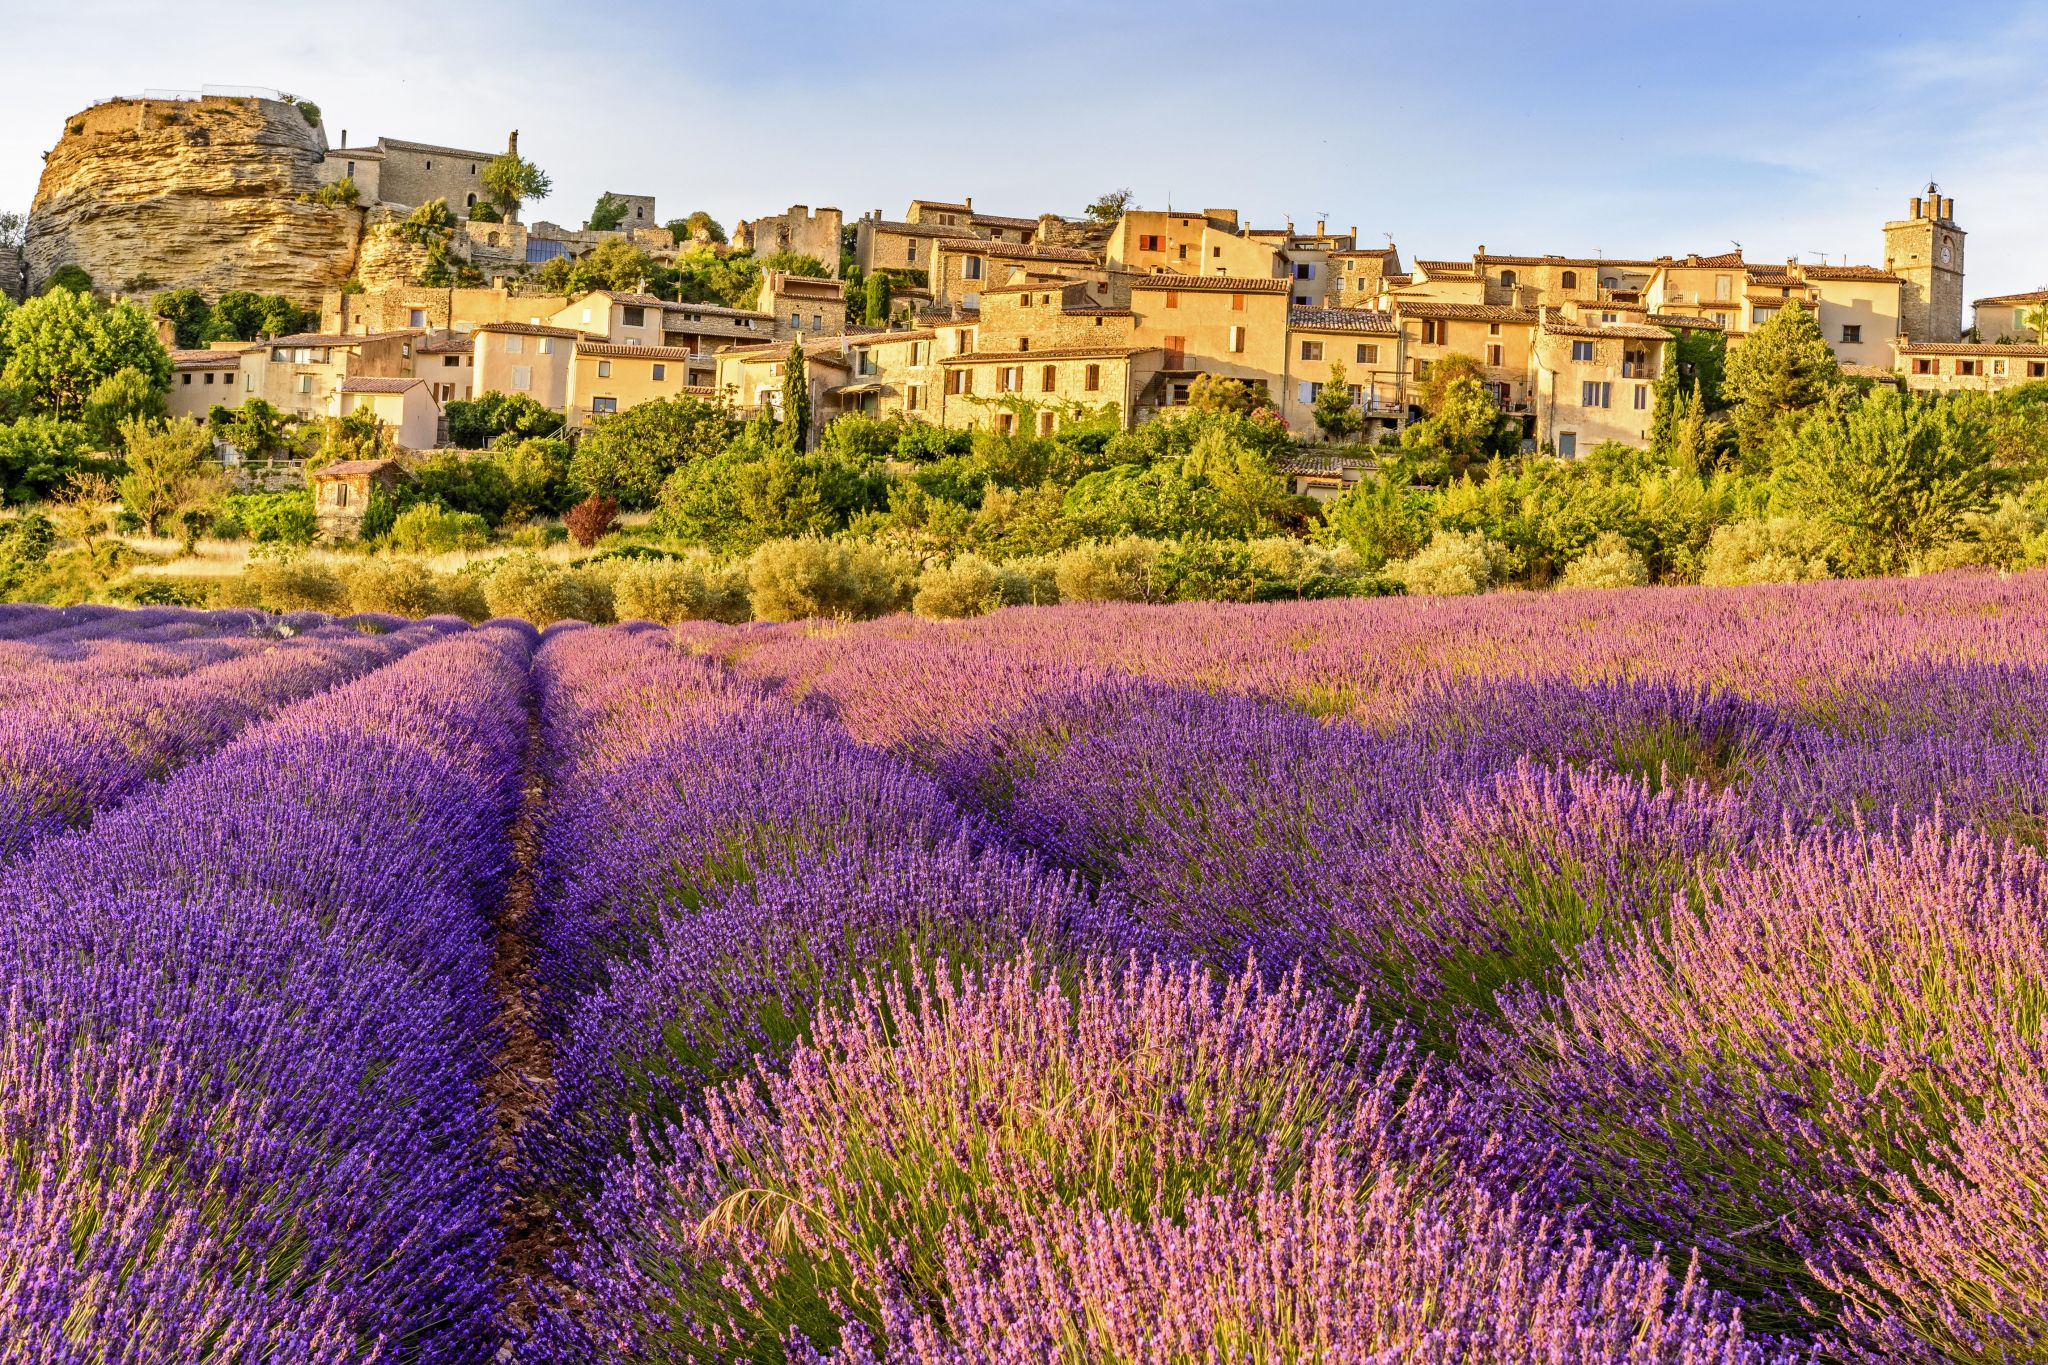 The Lavender Fields of Saignon, France